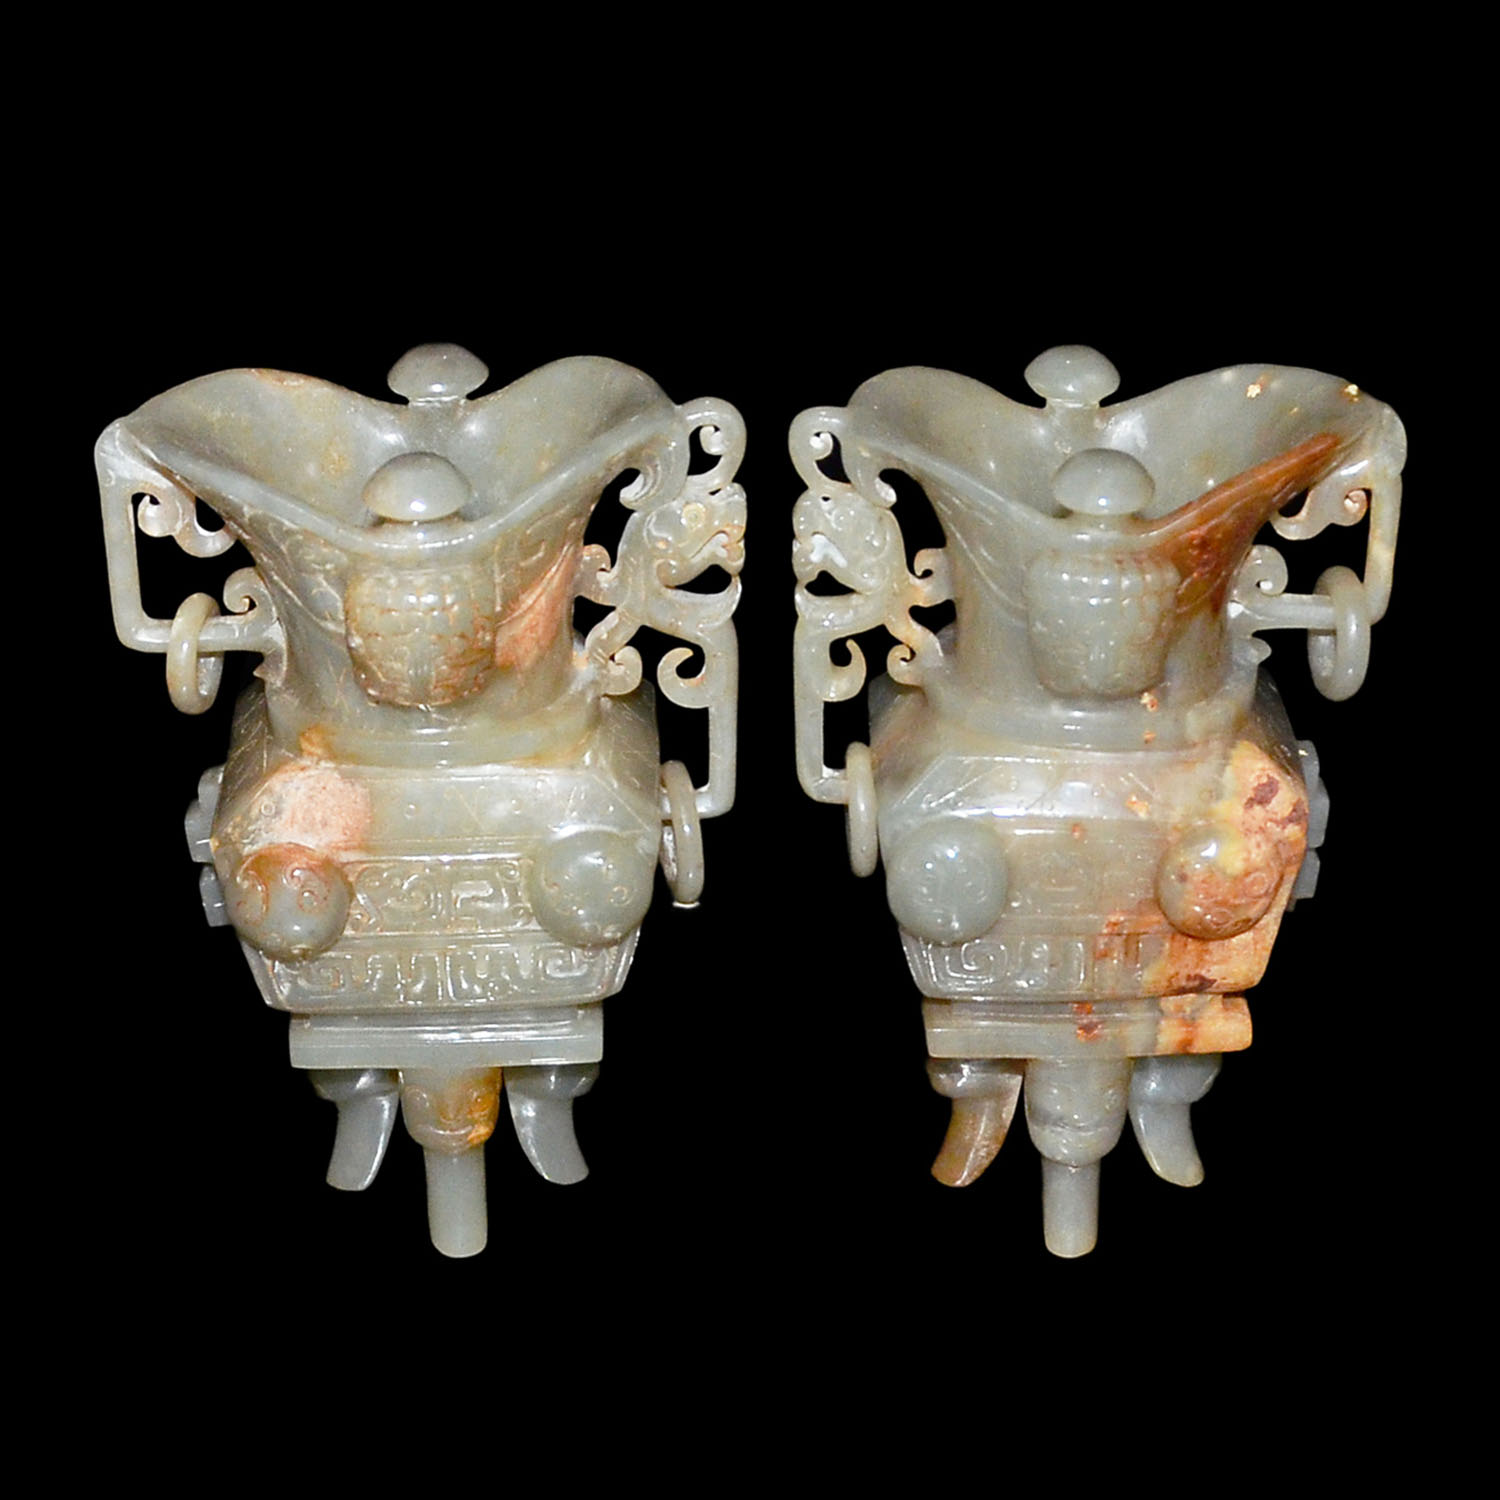 Lot 207 - 玉雕獸面紋活環四足方爵杯一對 A Pair of Carved Ceremonial Jade Jue with Taotie Masks, Loose Rings and Four